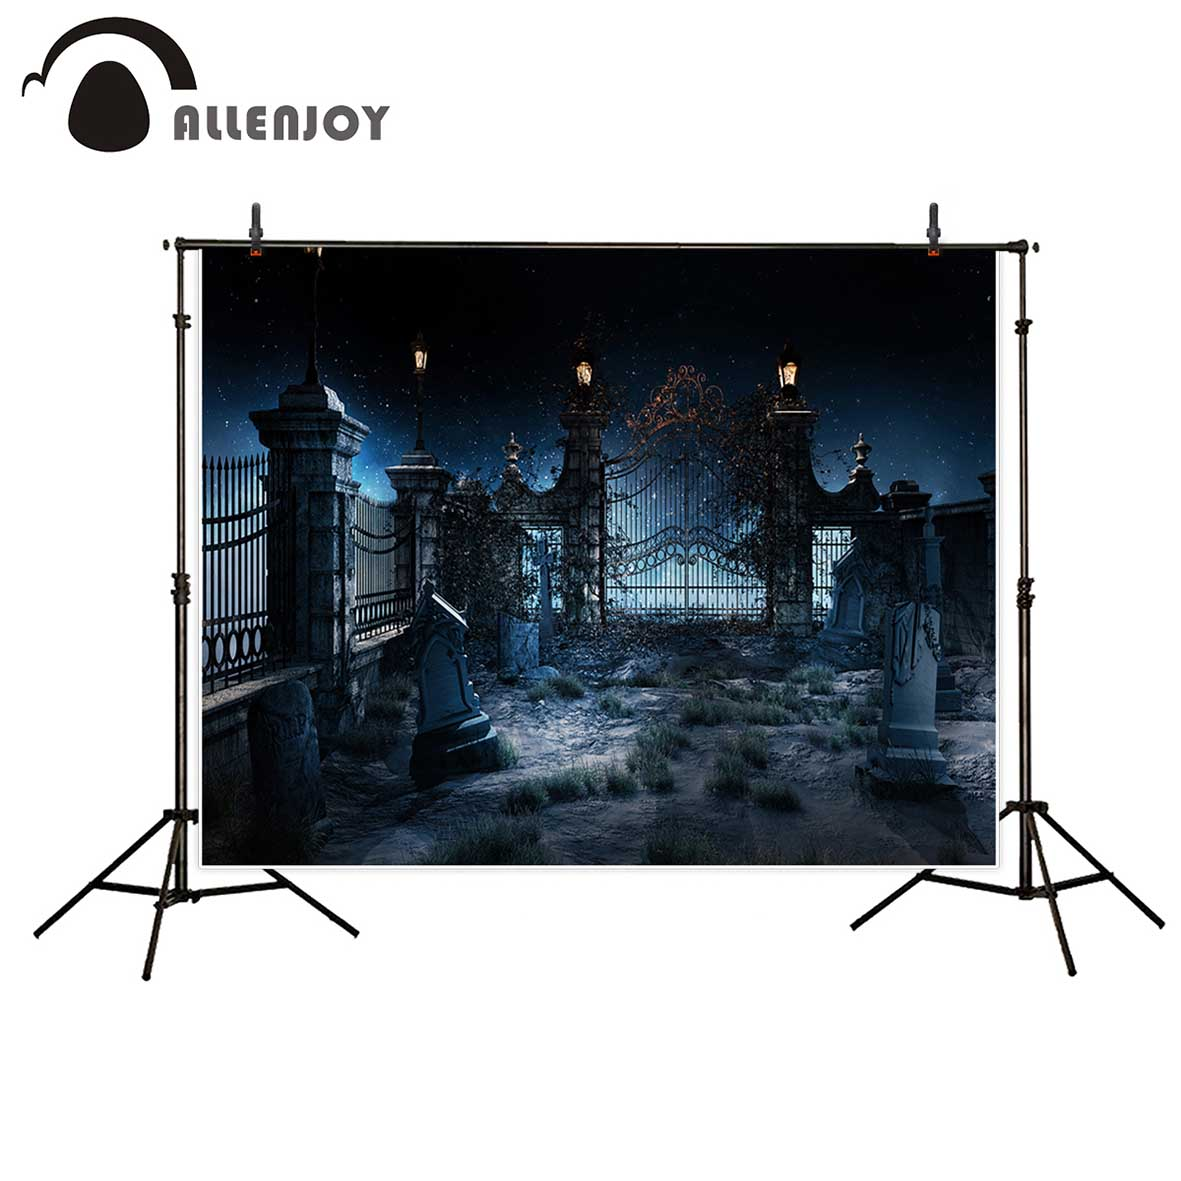 Allenjoy vinyl photo backdrops Cemetery Tombstone Horror Iron gate Halloween backdrop photocall photo printed excluding stand